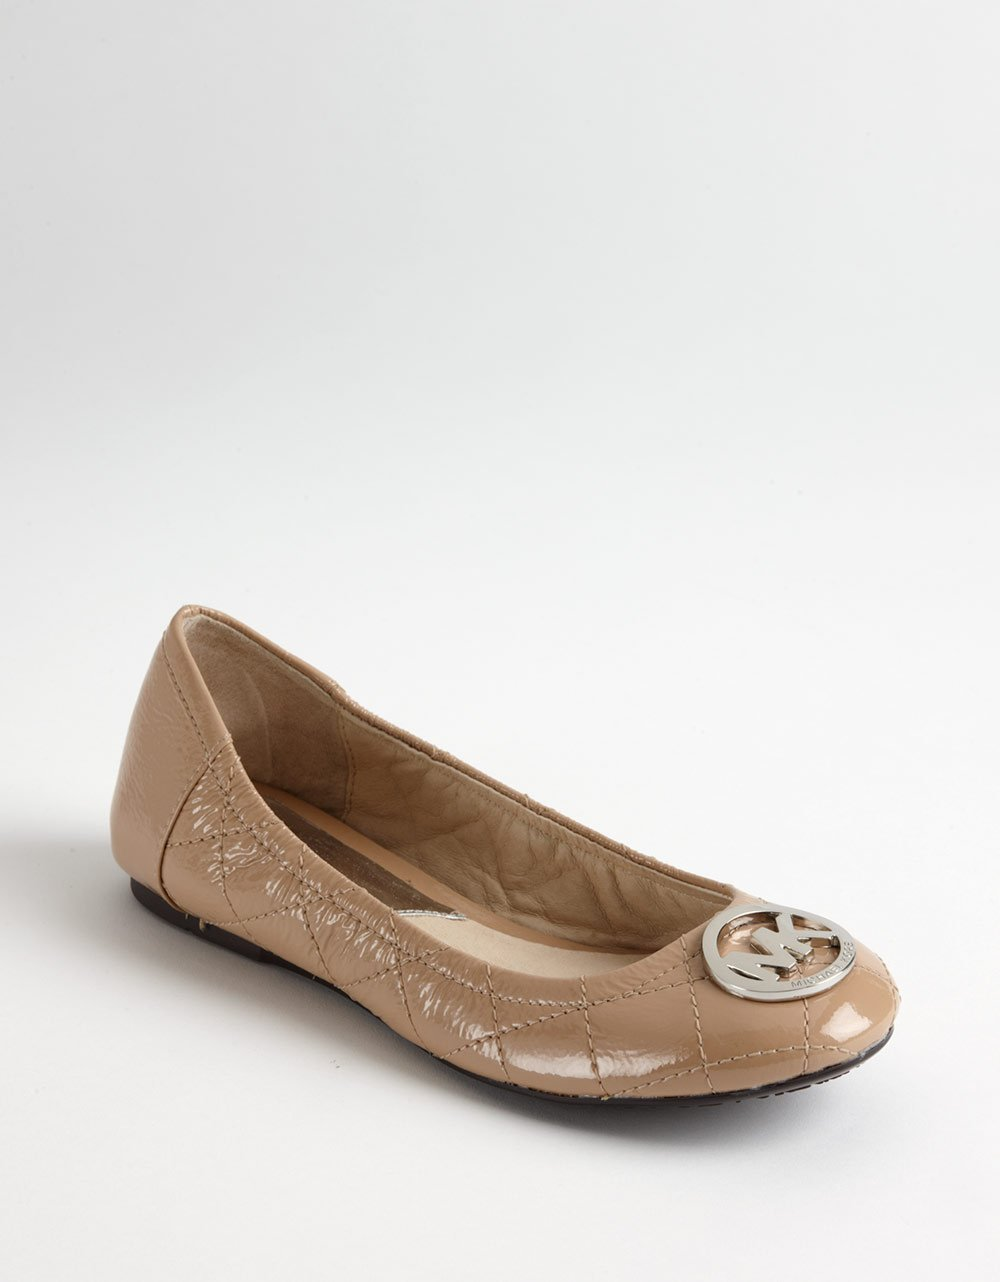 michael michael kors fulton quilted leather ballet flats in brown lyst. Black Bedroom Furniture Sets. Home Design Ideas